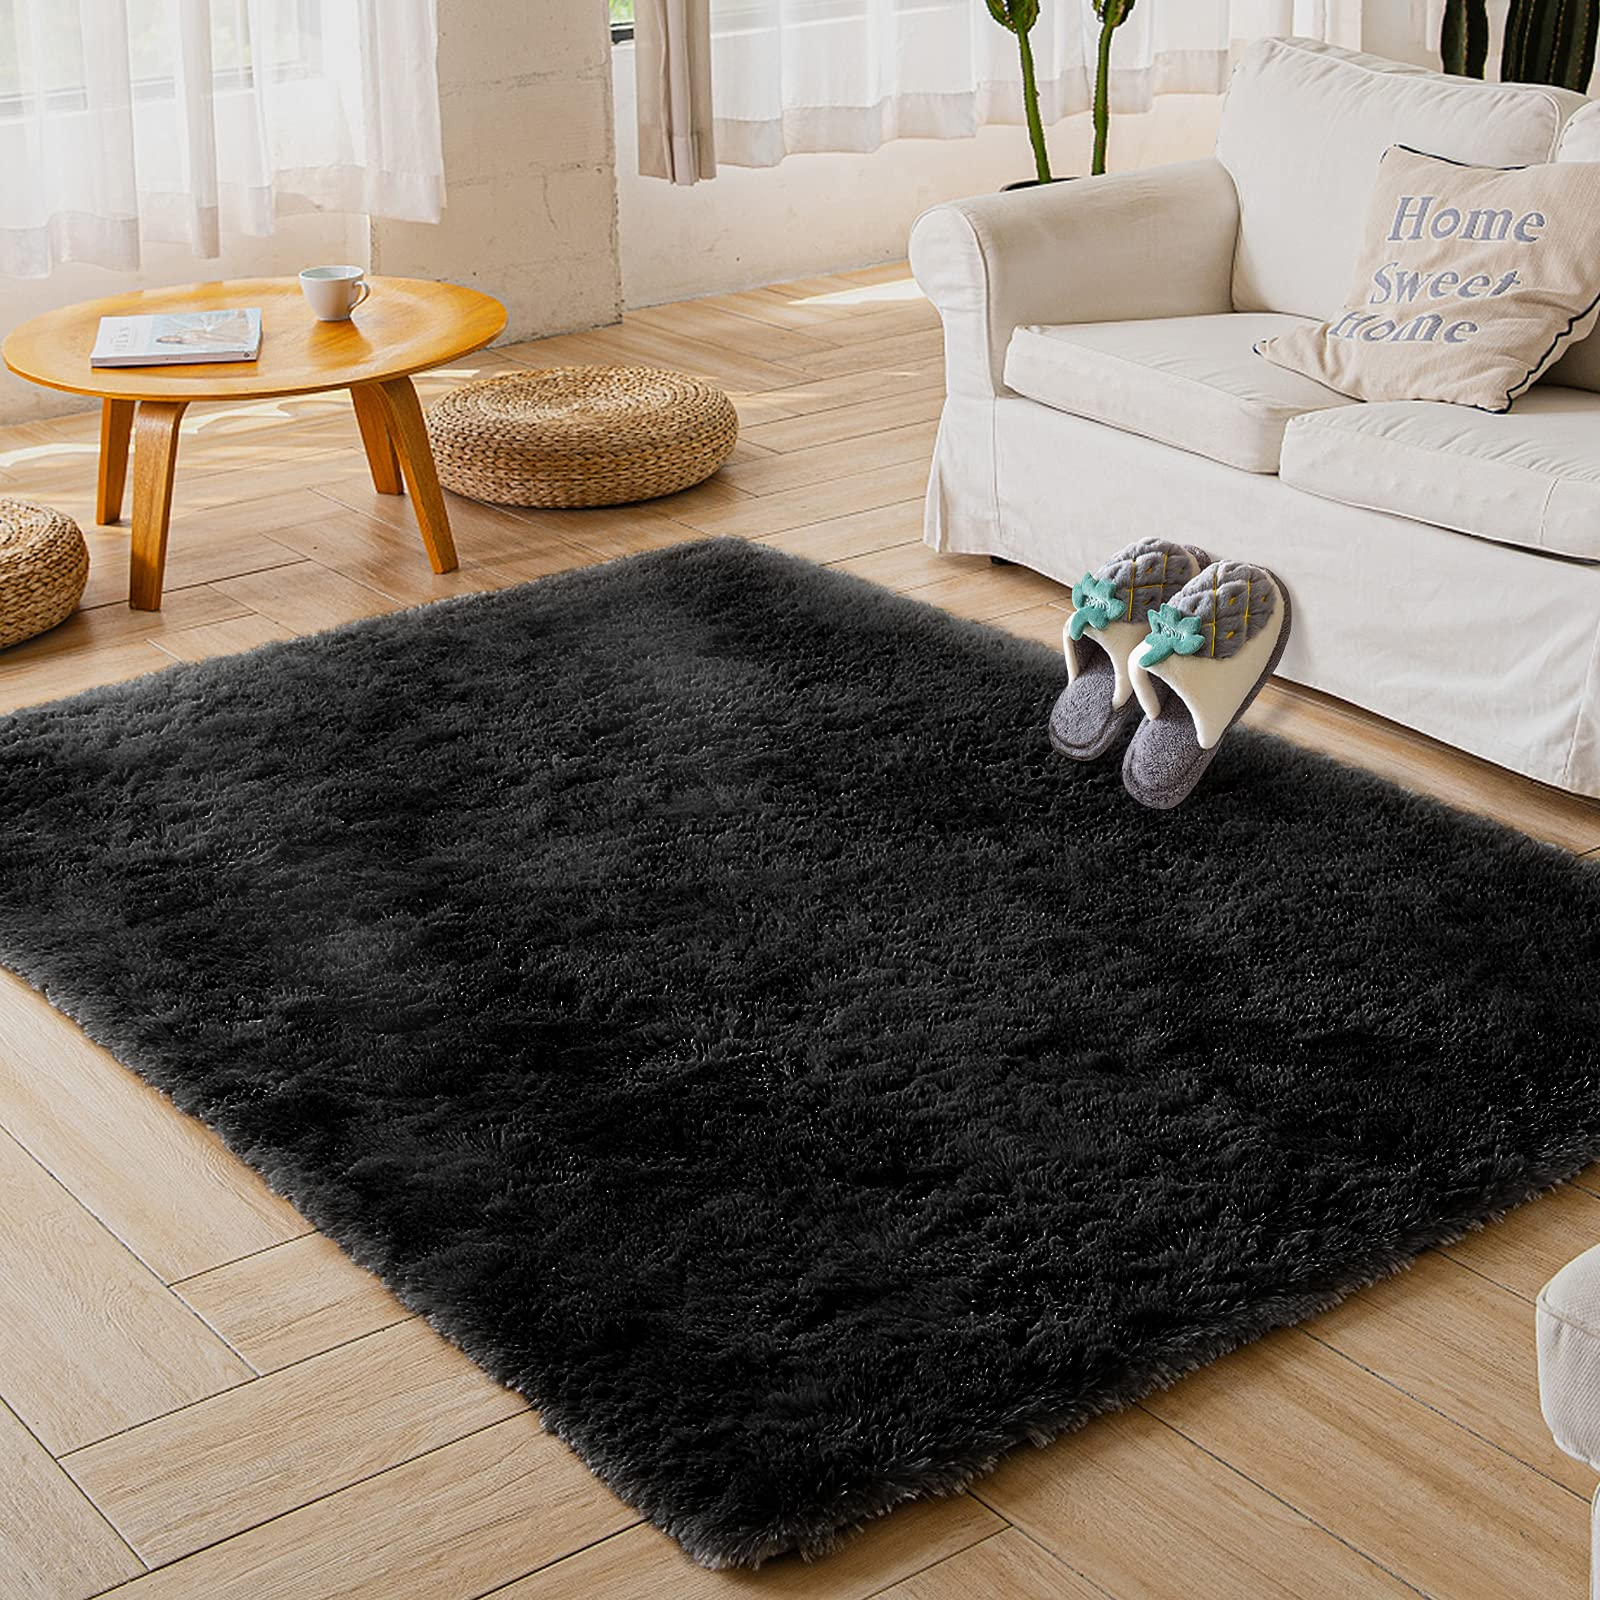 Area Rugs, Qumig Machine Washable Modern Shag Rugs for Bedroom Living Room, Super Soft and Luxurious Non-Slip Thick Carpet for Kids Nursery Girls Home, 2x3 Feet Black